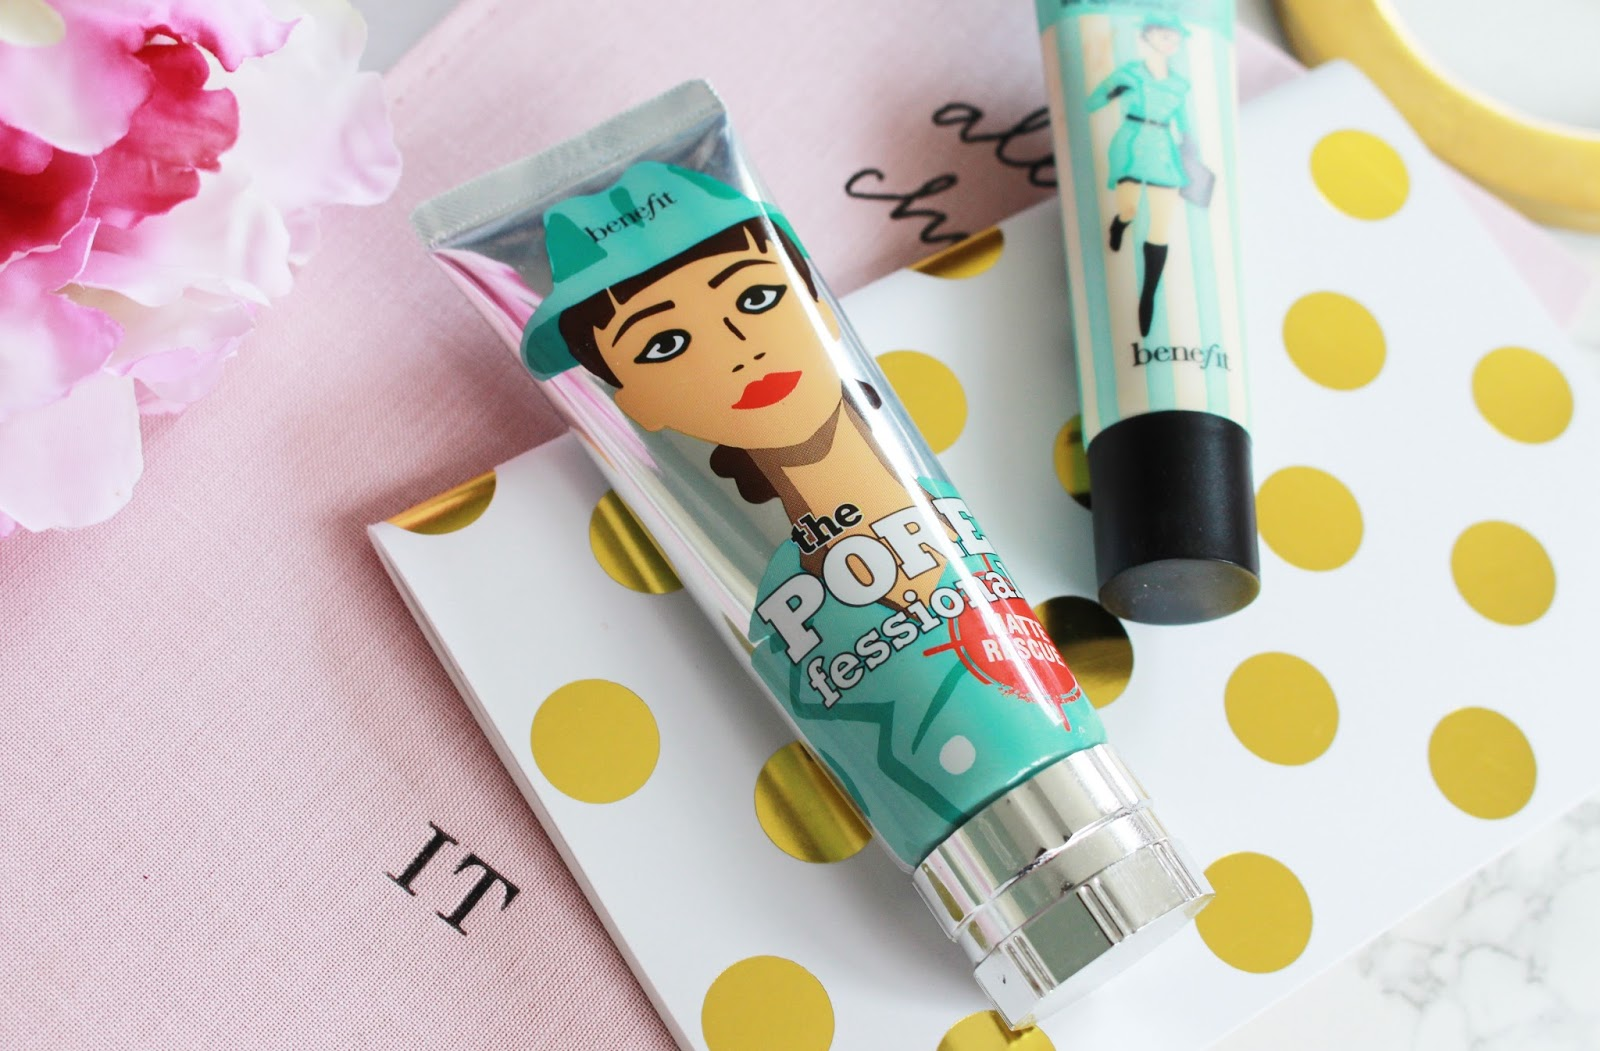 Benefit Porefessional REVIEW, Benefit Pro Balm, benefit Matte Rescue Review, oily skin review, matte products review, oily skin uk, matte uk, benebabe, benefit, beauty banter, porefessional